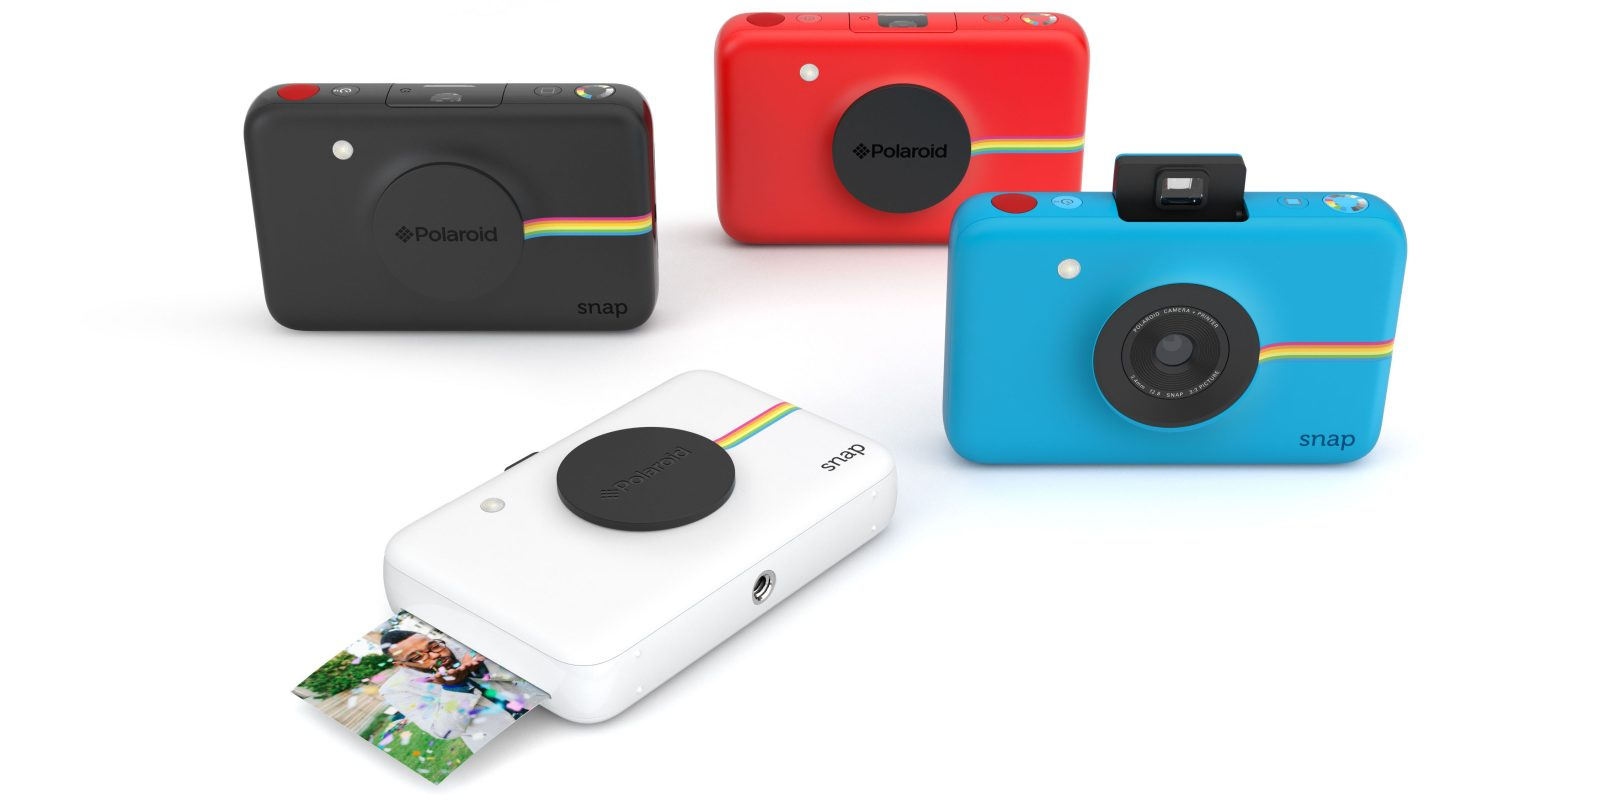 Polaroid's latest pocket-sized Snap cam instantly prints photos with no ink